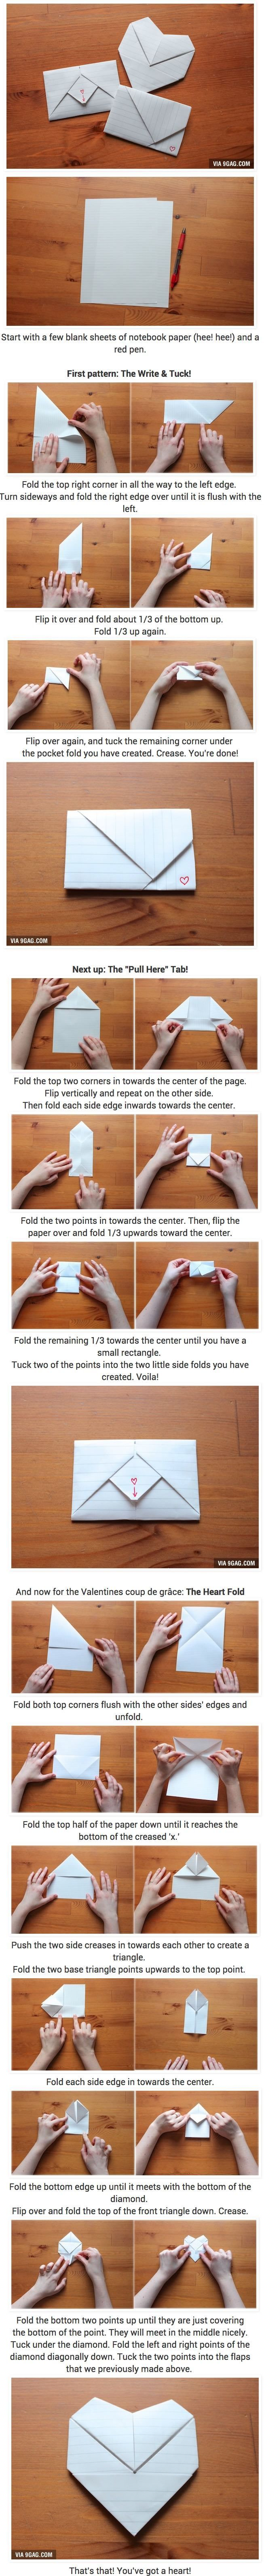 Make It: Folded Love Letter - Tutorial #origami #papercrafts #valentinesday #love